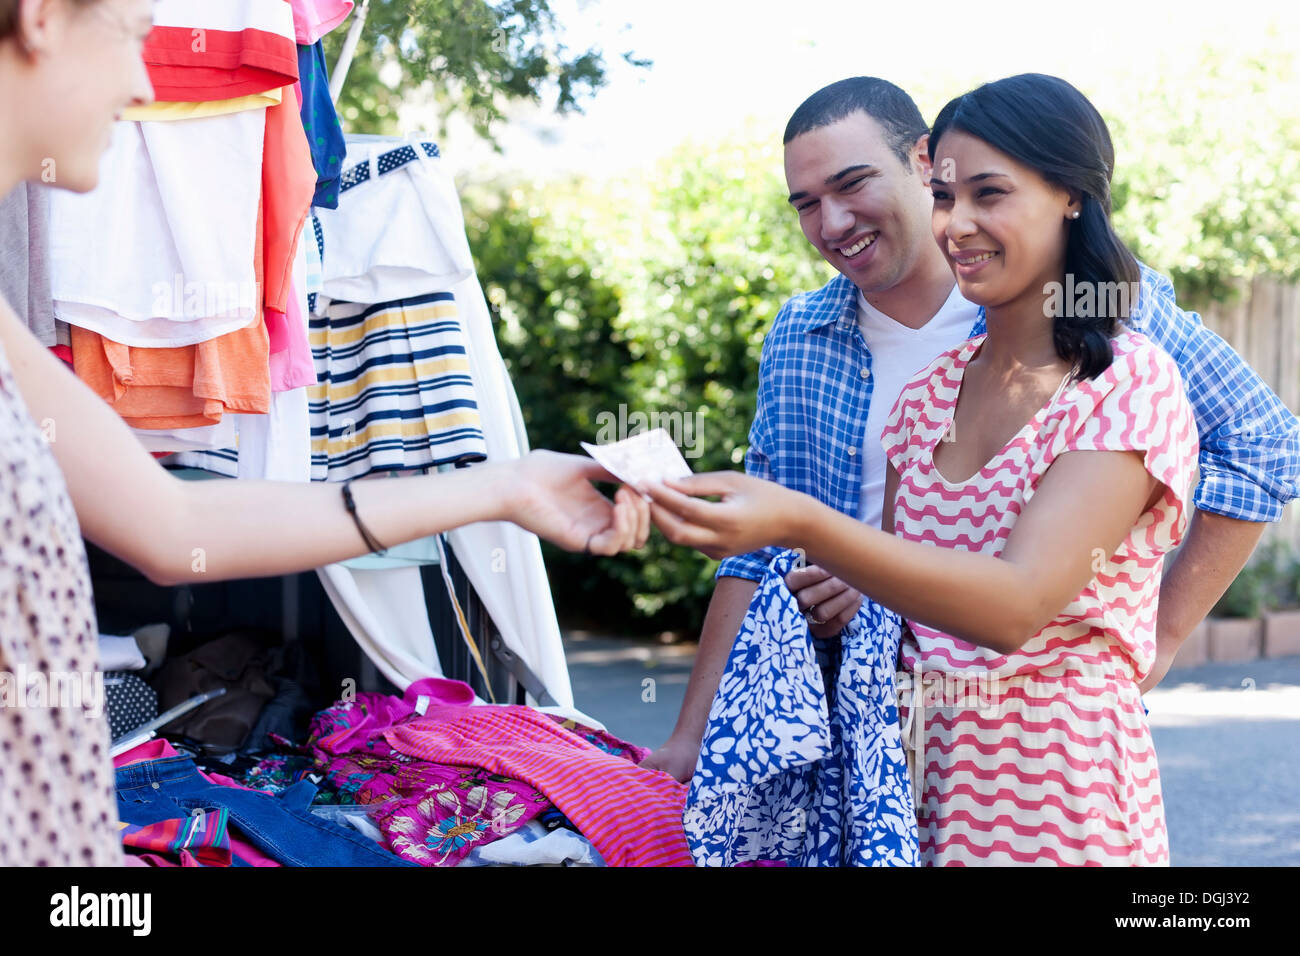 Young woman buying sundress on market stall Stock Photo